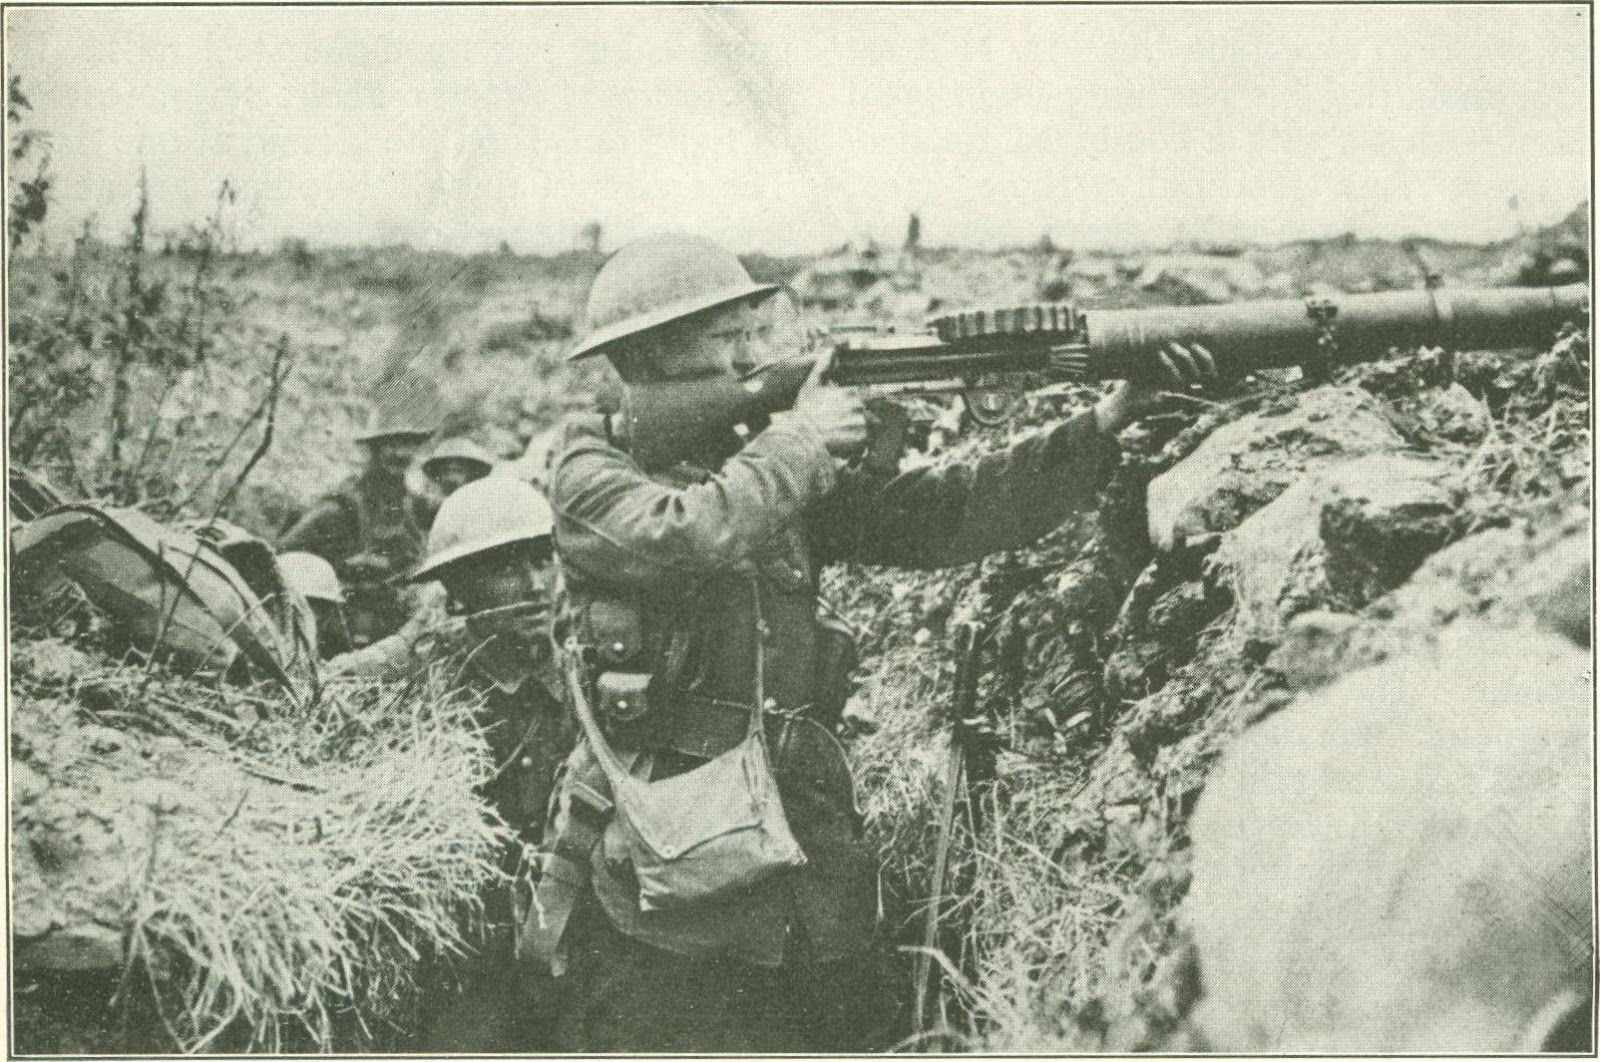 Ud Study Abroad >> digital history project: Lewis Machine Gun in World War I